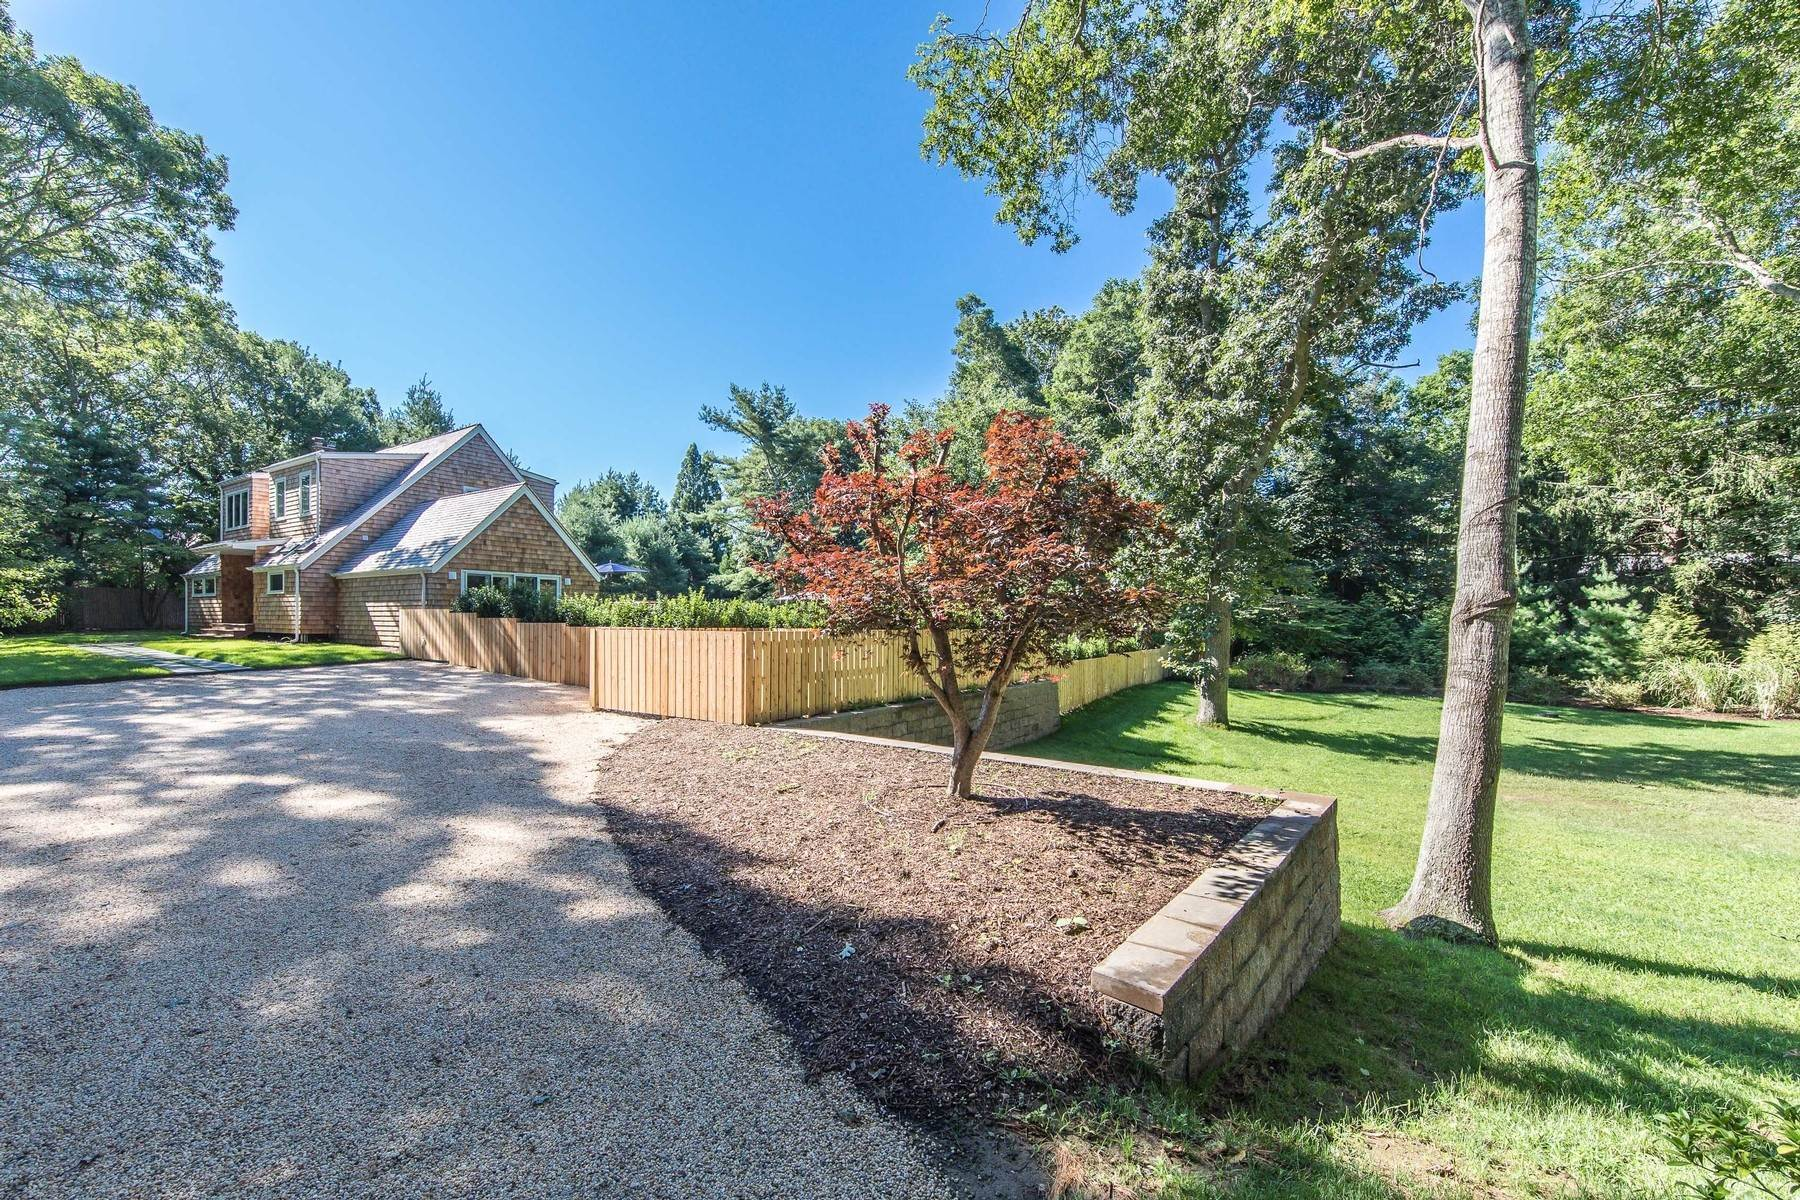 Single Family Home at East Hampton Village Private South Of Highway Barn Rental East Hampton, NY 11937